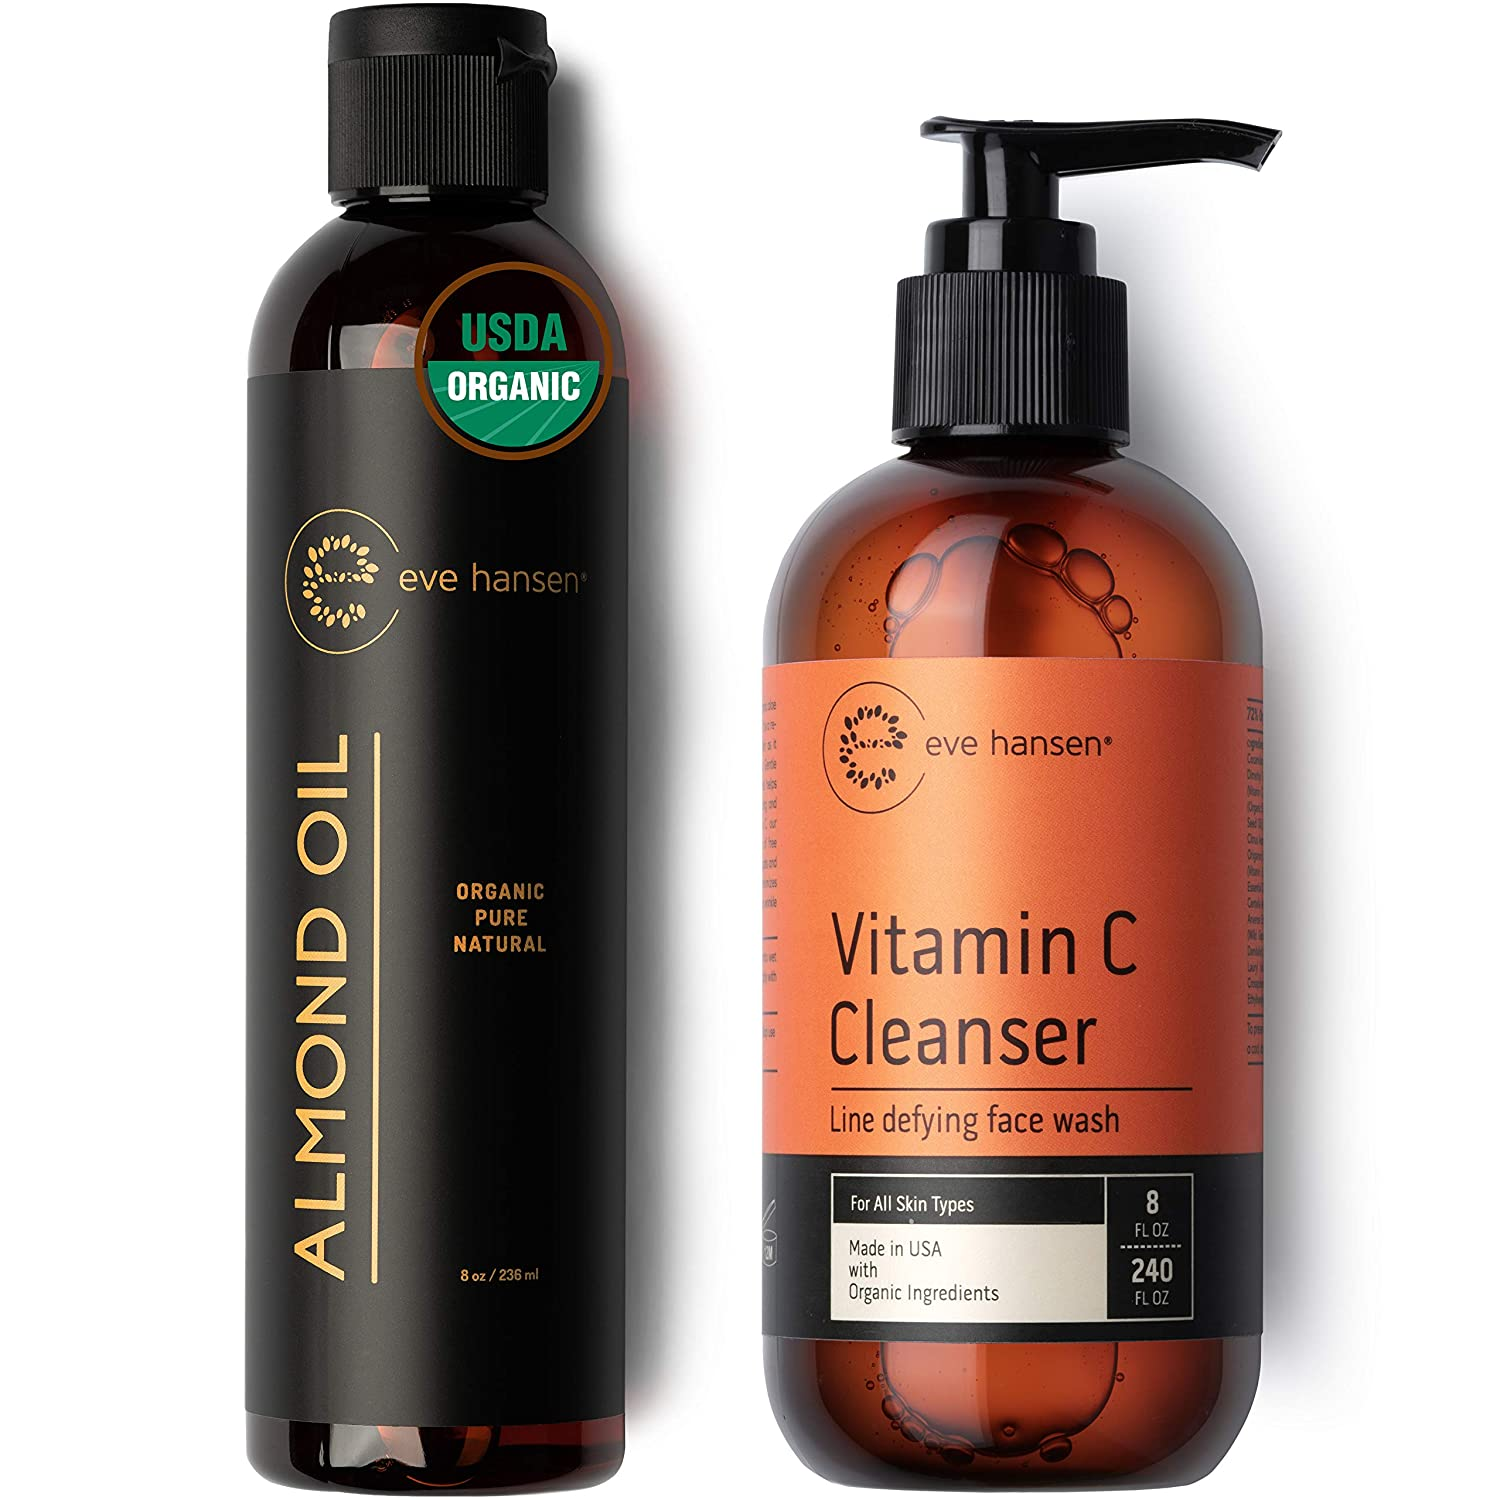 Eve Hansen Natural Double-Cleanse Set   Full Size Organic Almond Face Oil (8 oz) to Remove Makeup   Vitamin C Face Wash (8 oz) to Cleanse Skin of Remaining Impurities